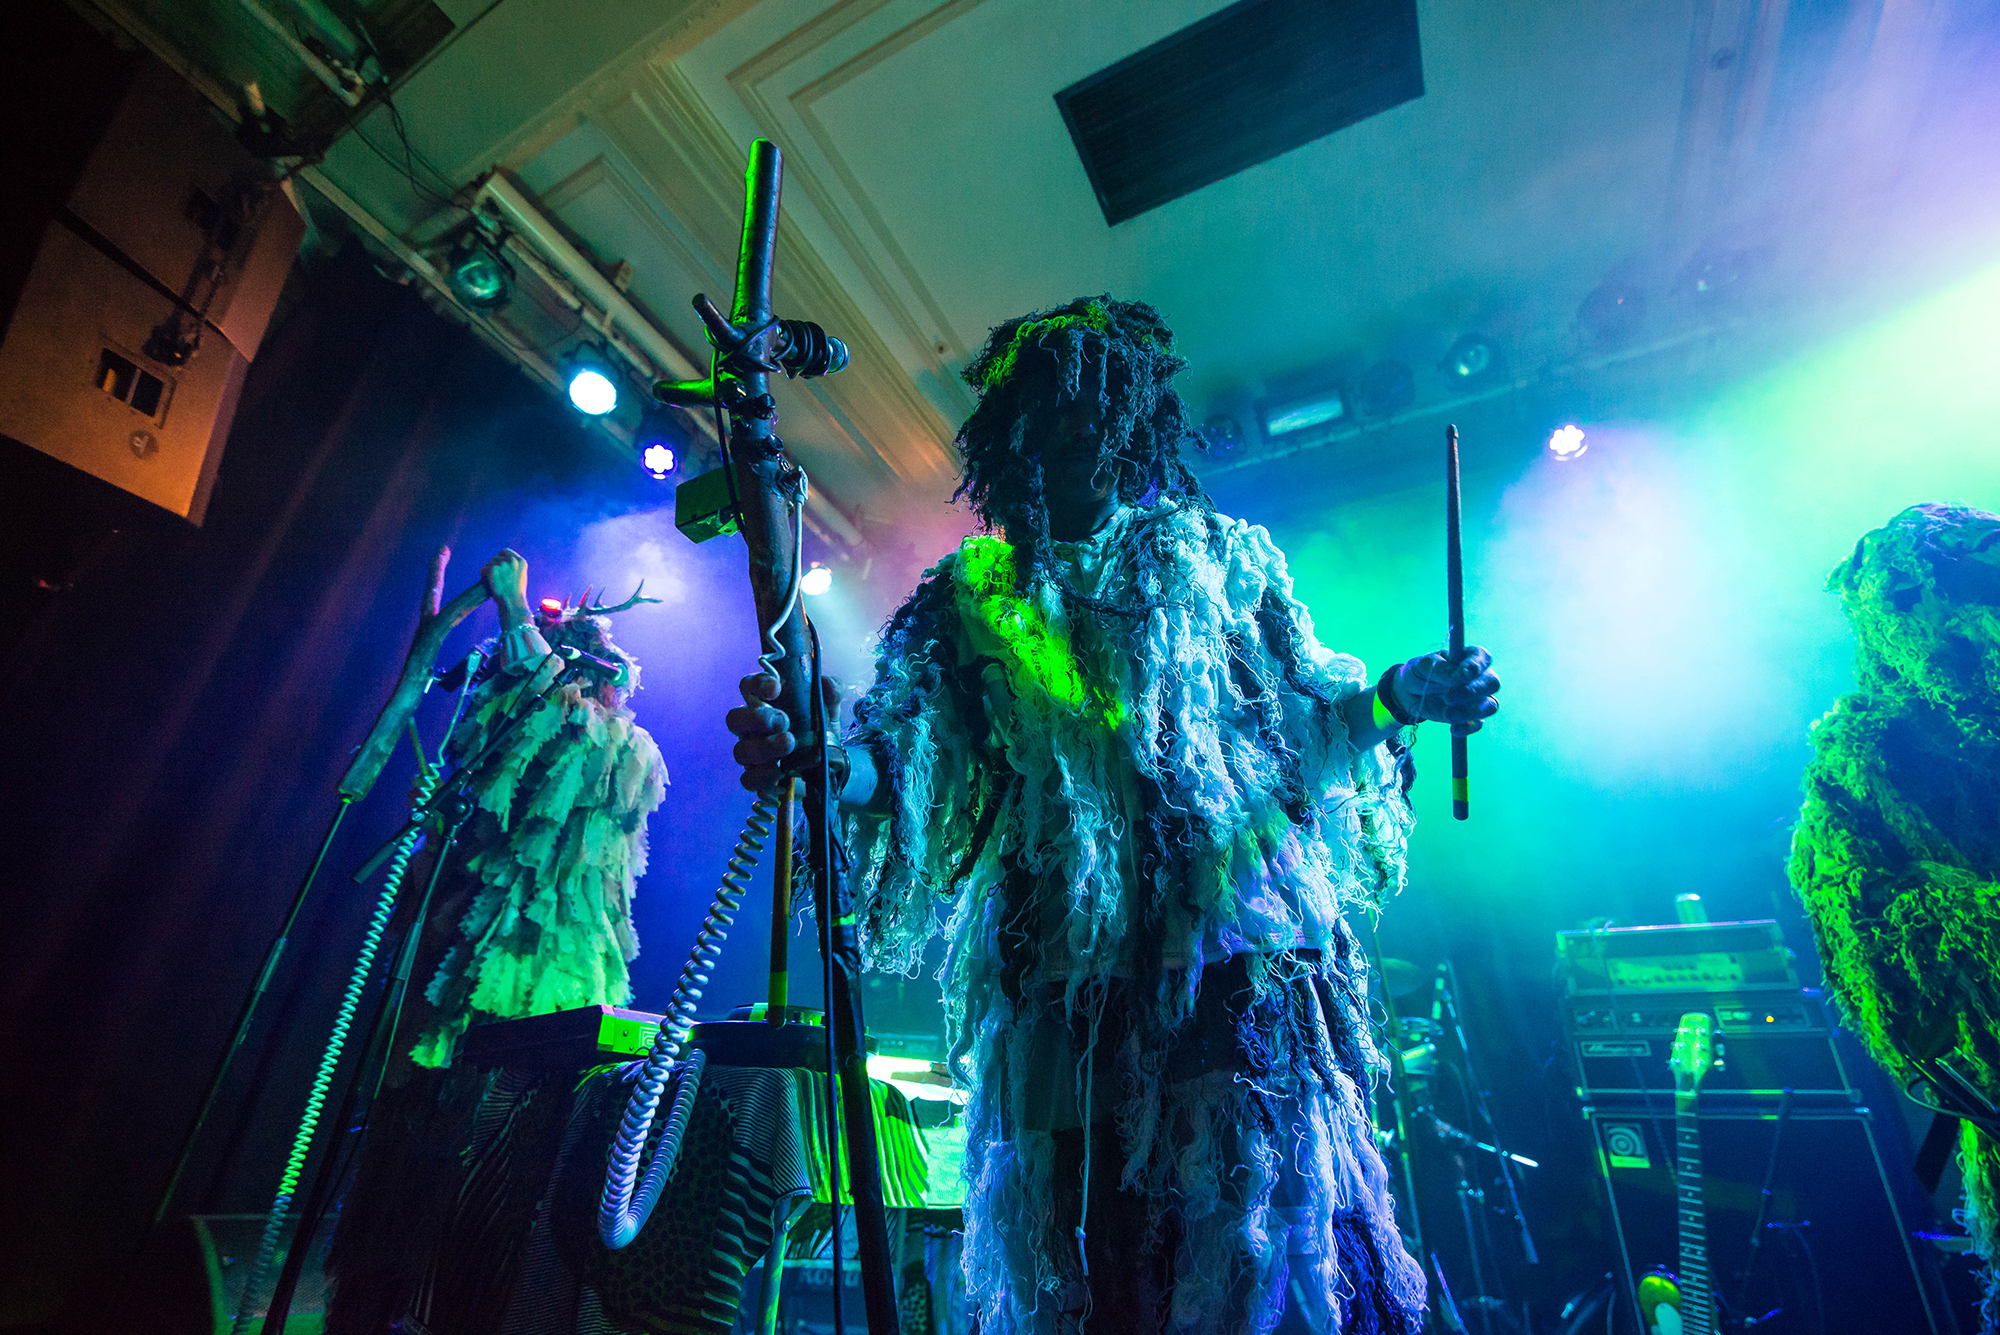 SnappedAnkles3